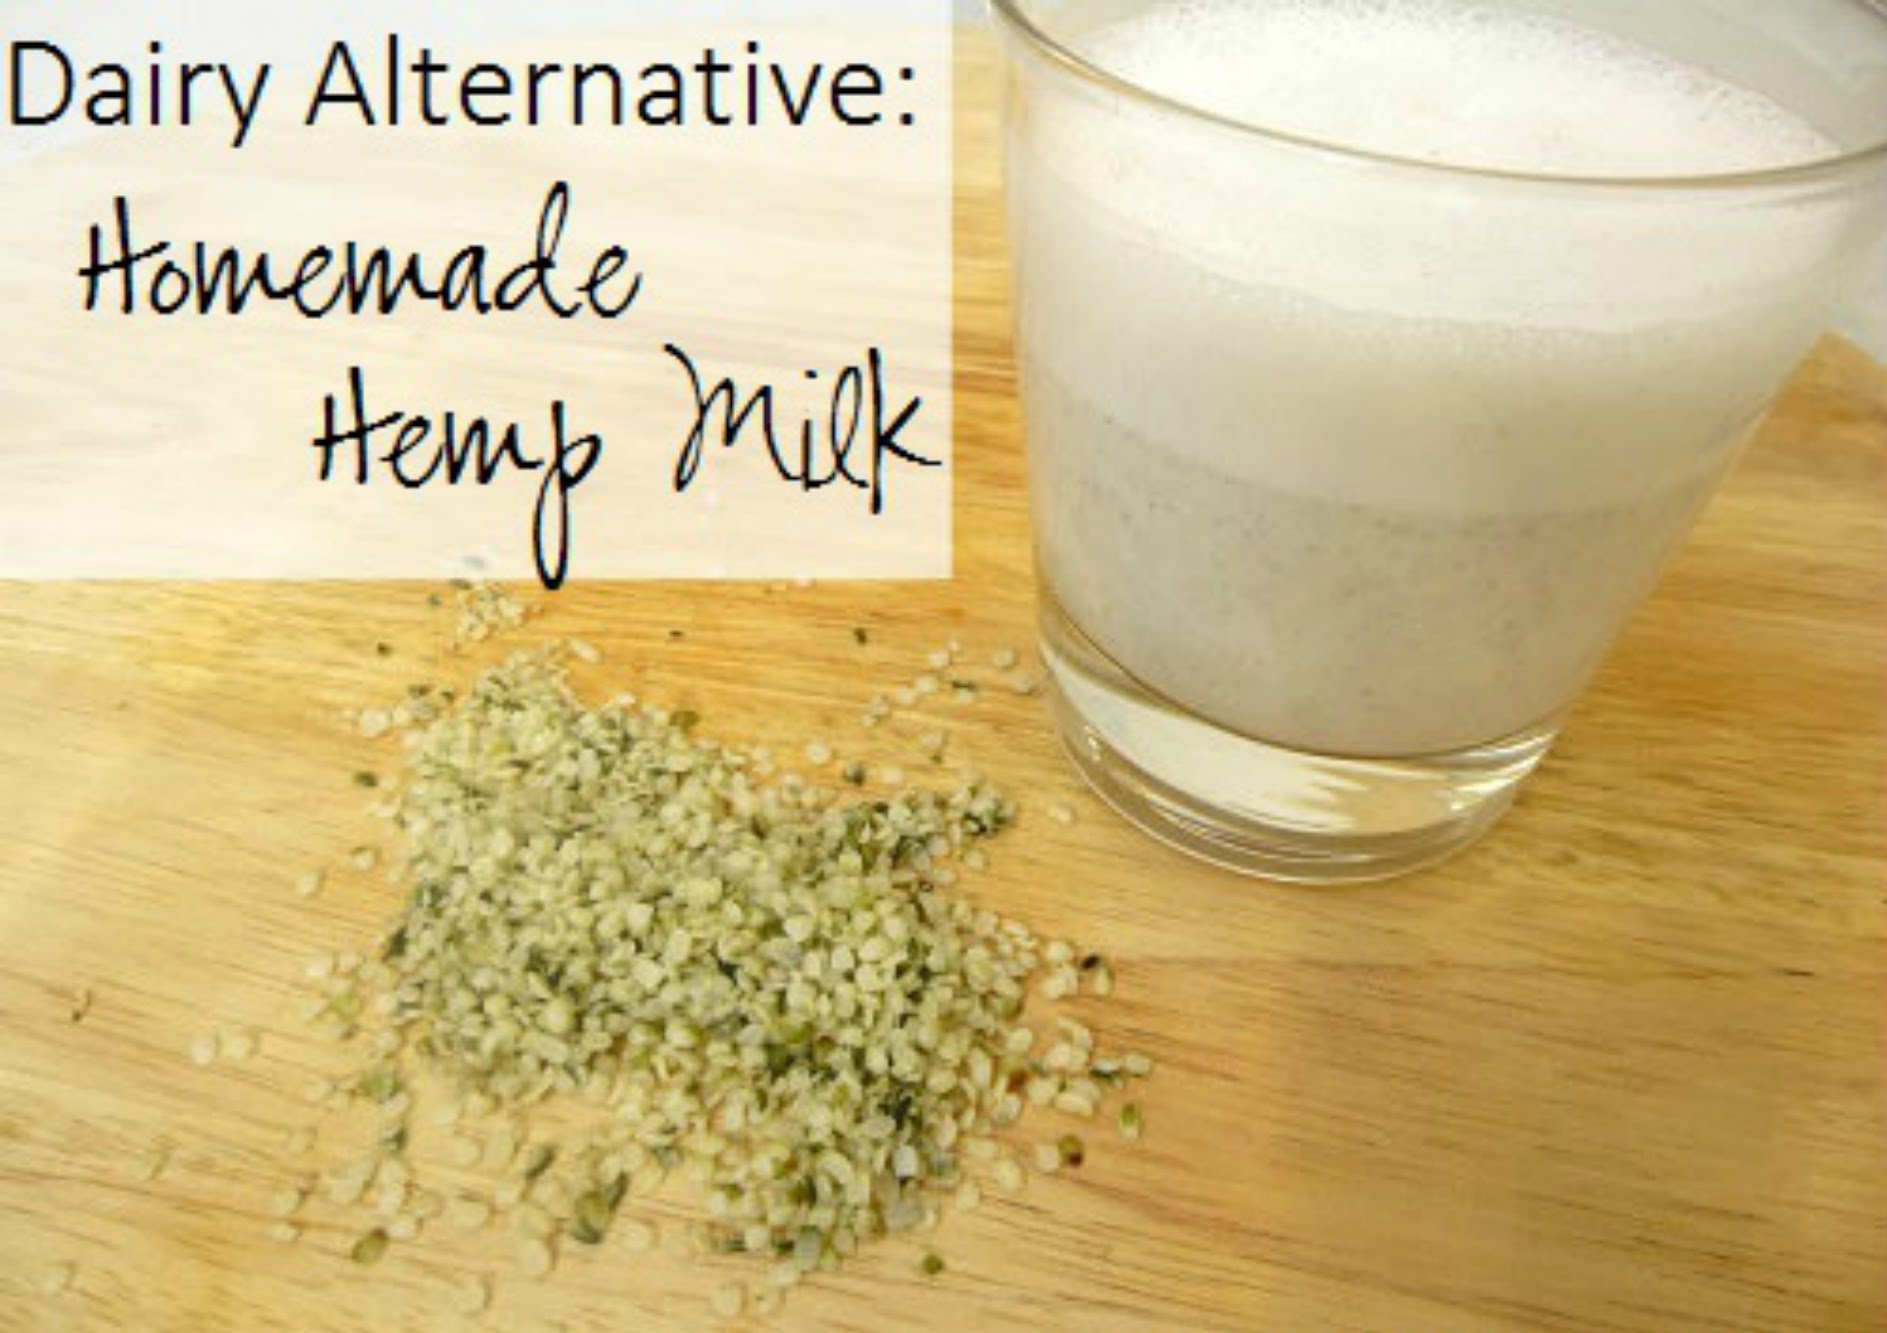 Hemp Seeds, Hemp Milk, Youtube Image, Nutrition, Dairy Alternative